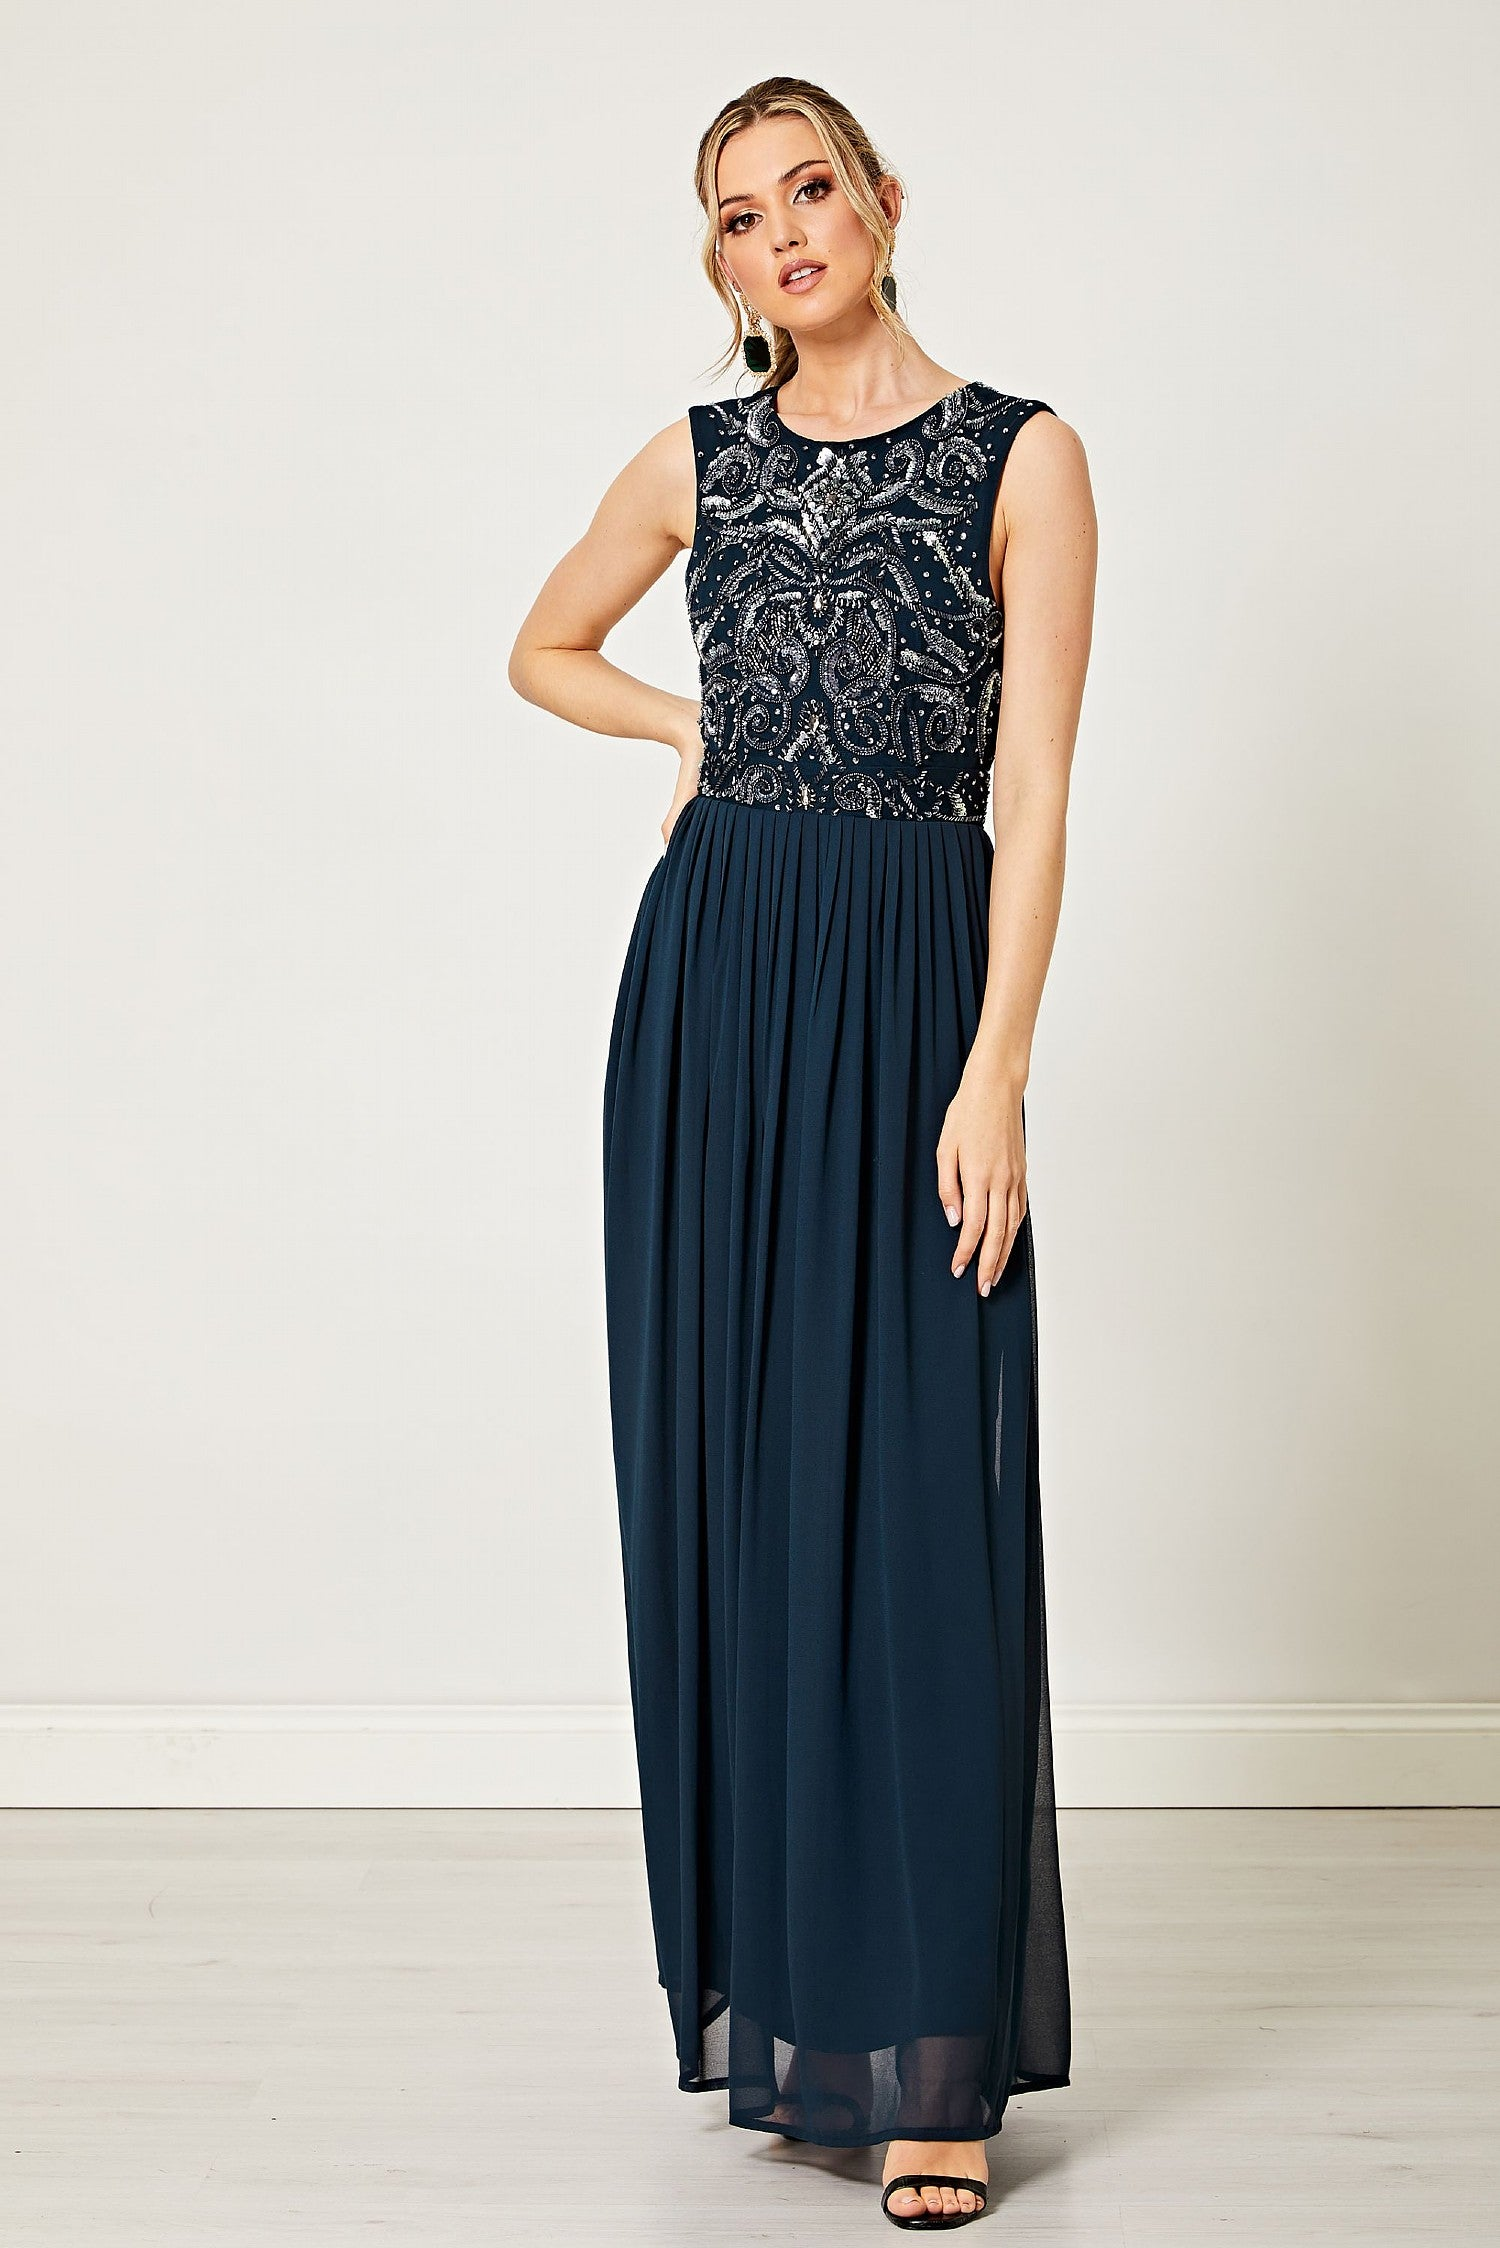 Elvira Navy Sleeveless Silver Embellished Maxi Dress